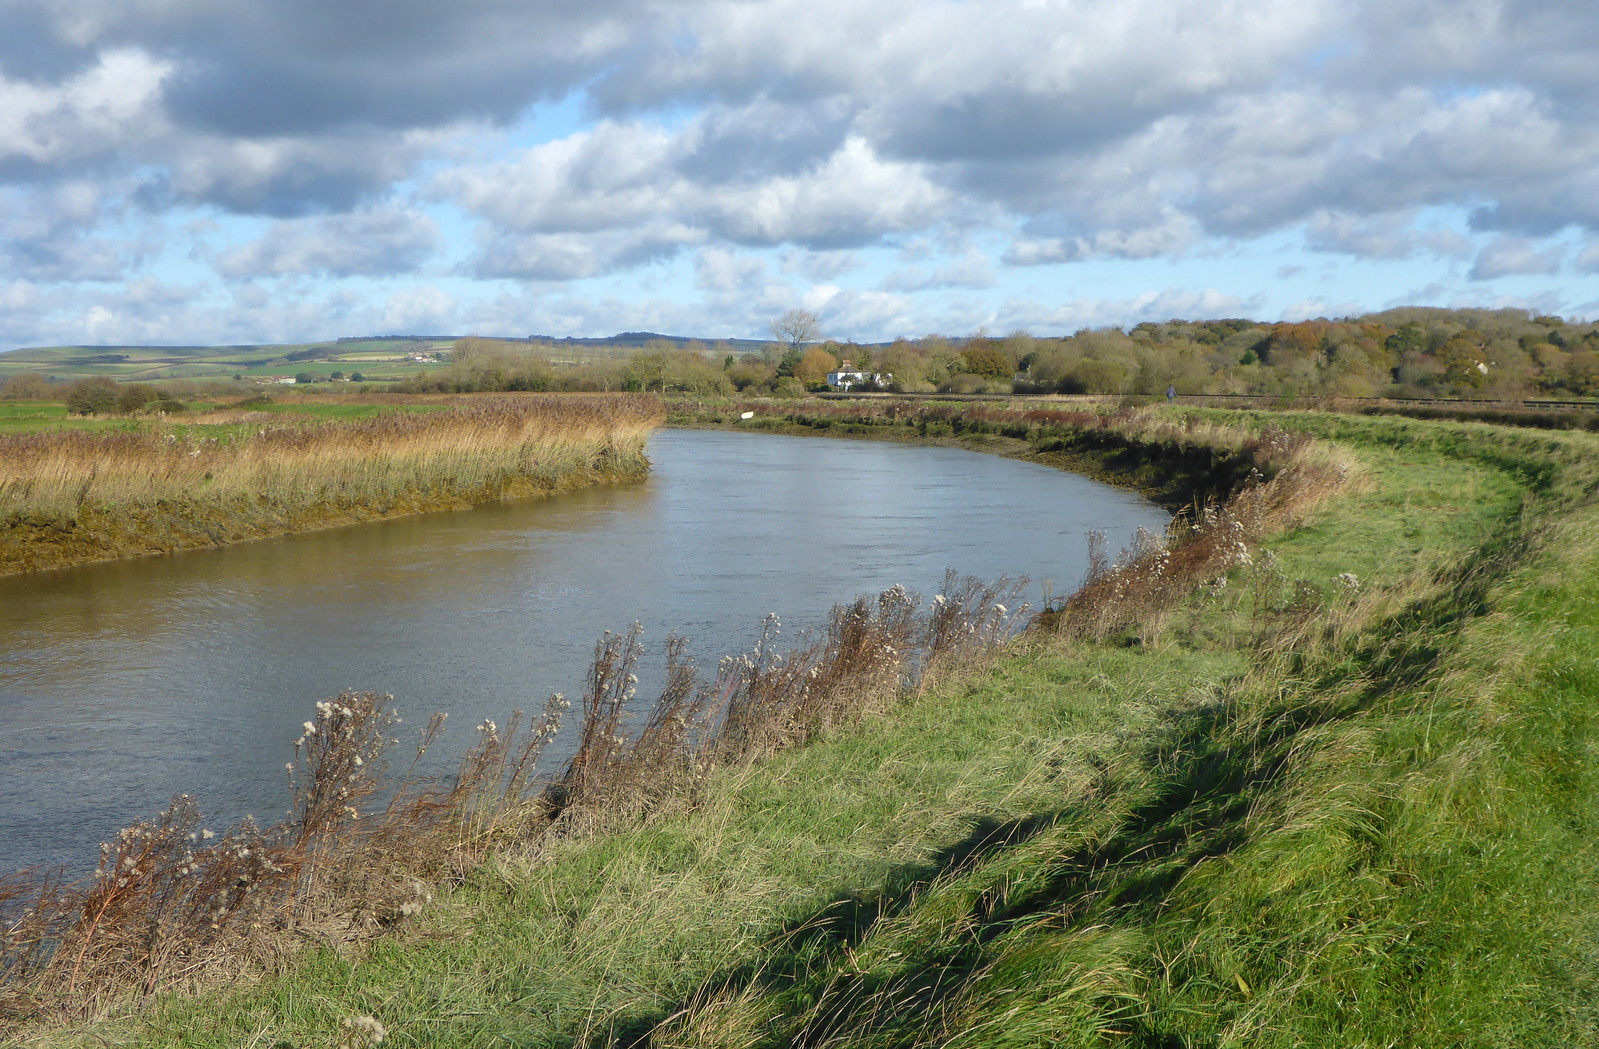 The RIver Arun near Arundel